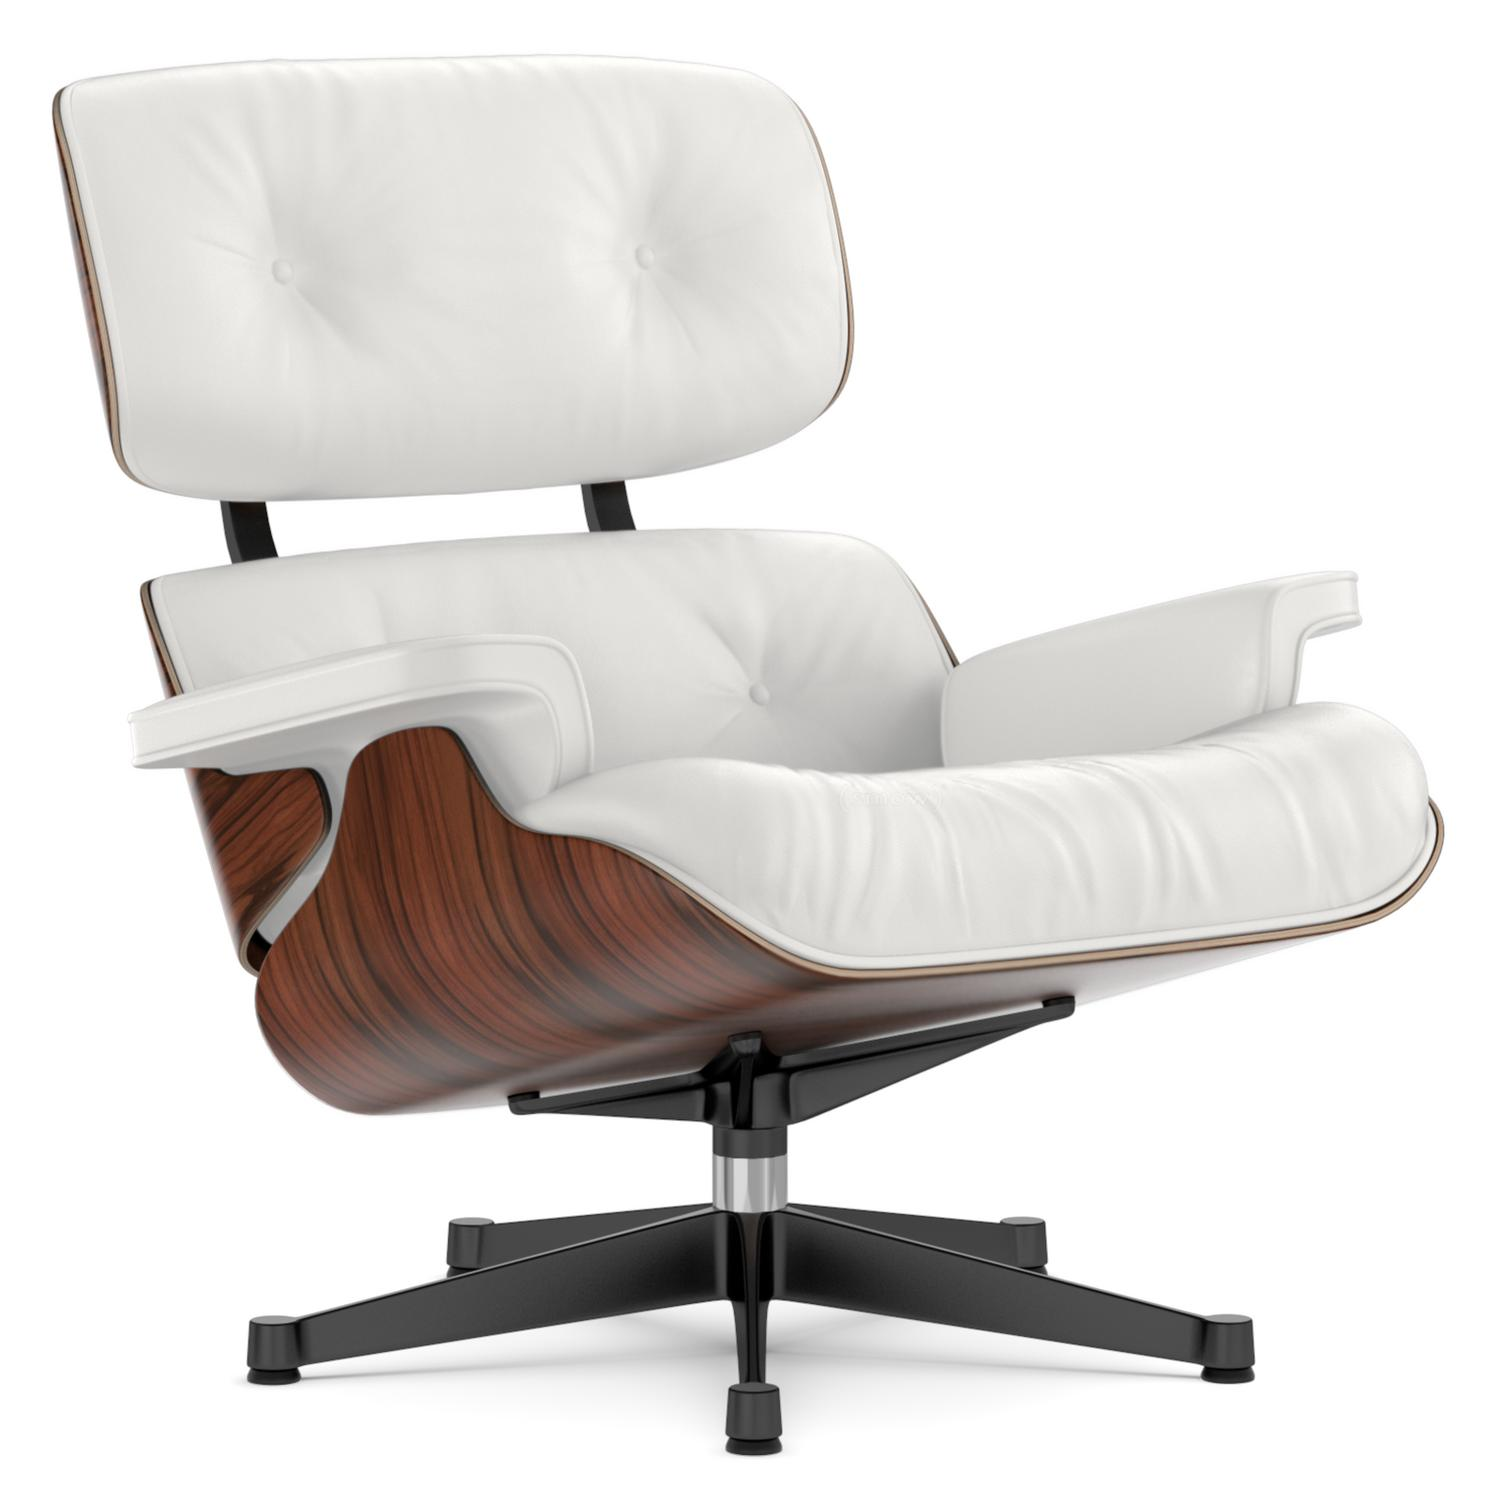 Lounge Chair Santos Palisander|Snow|89 Cm|Aluminium Polished, Sides Black